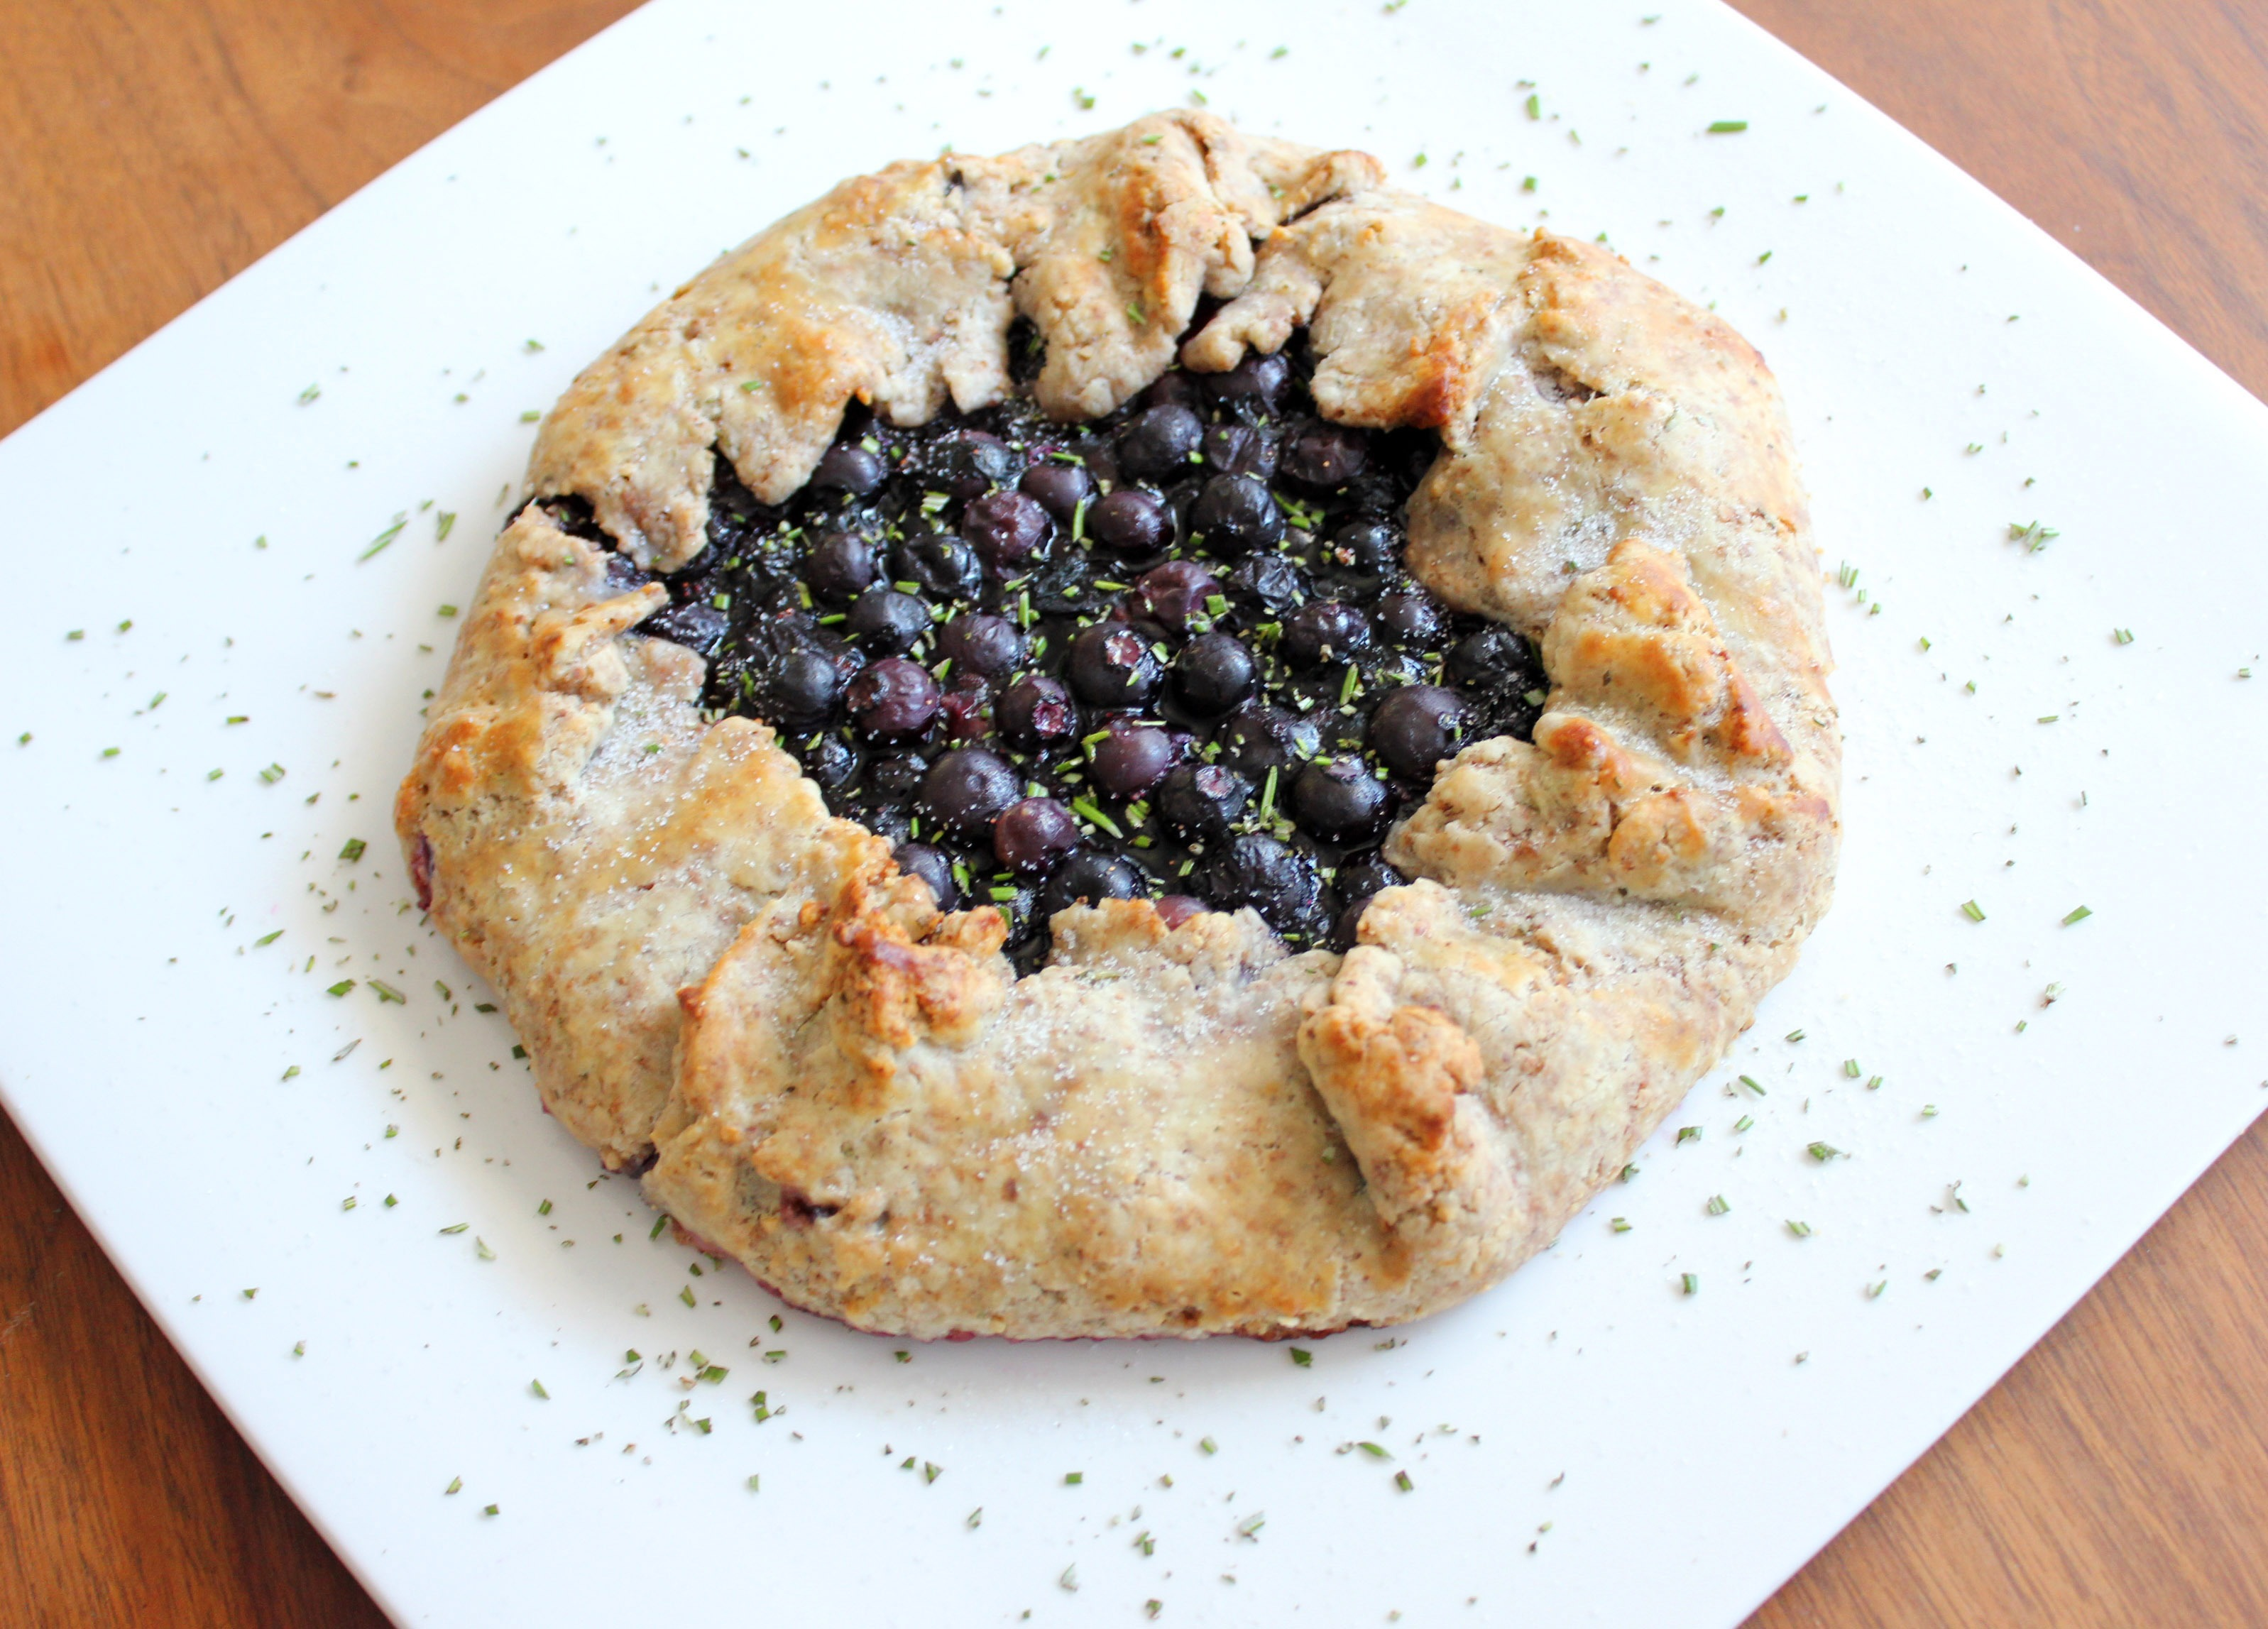 Blueberry and Lemon Galette with Hazelnut Rosemary Crust